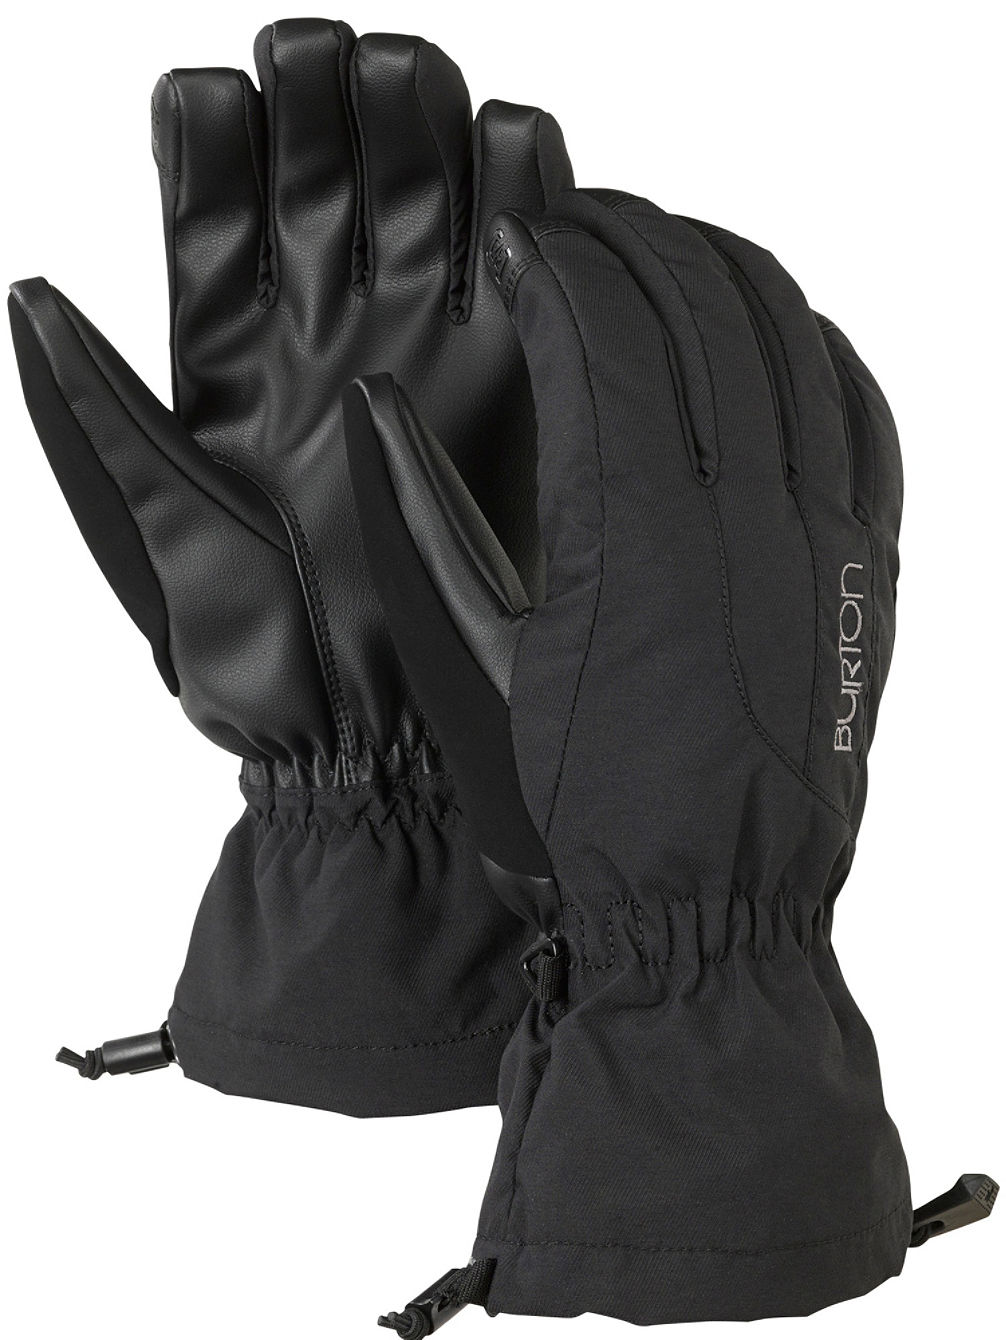 Profile Gloves